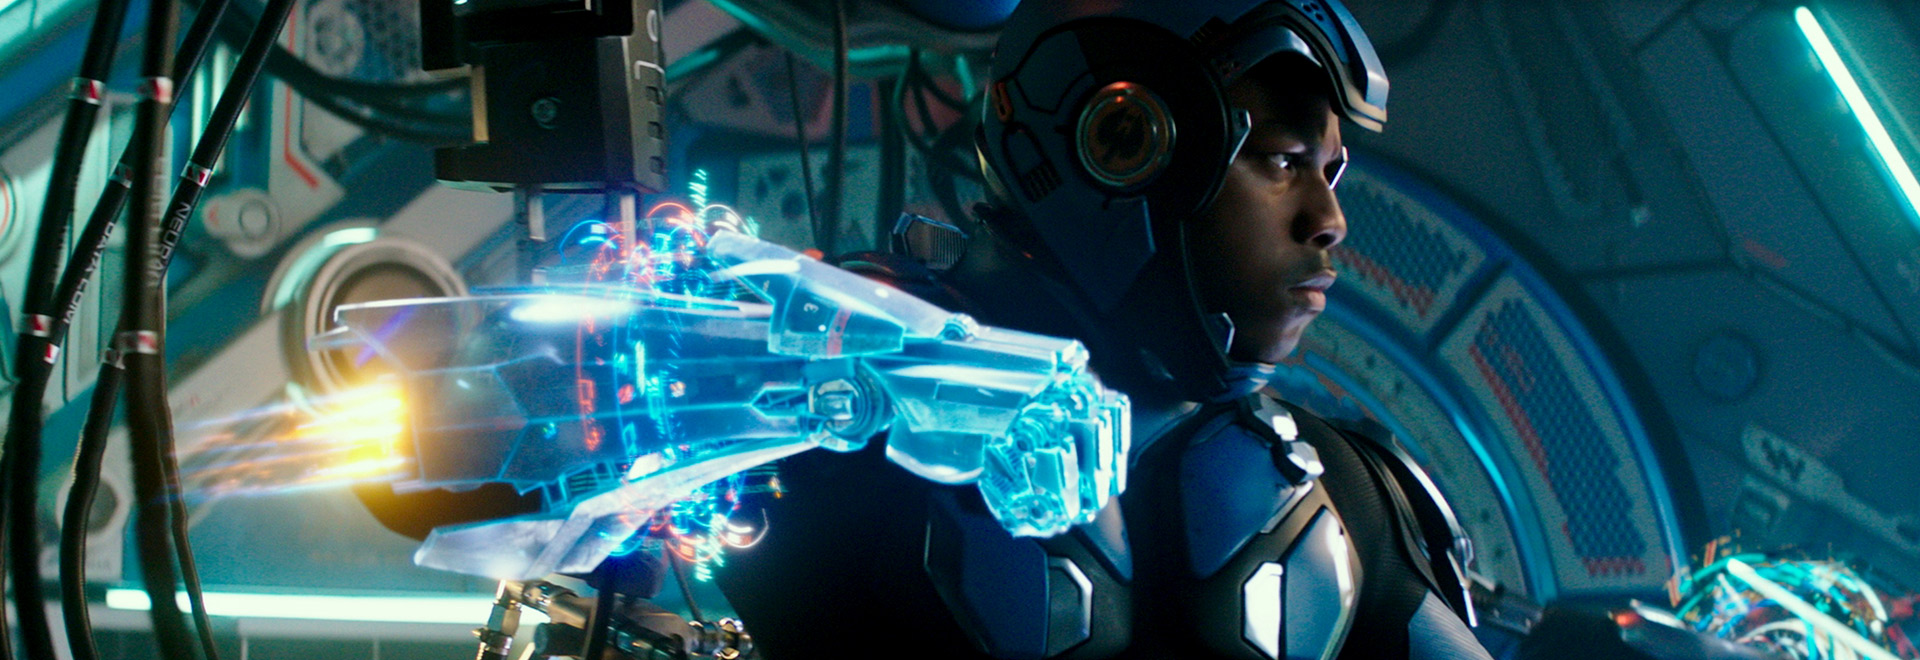 review, Pacific Rim Uprising, Pacific, Rim, Uprising, film, movie, latest movies, new movie, movie ratings, current movie reviews, latest films, recent movies, current movies, movie critics, new movie reviews, latest movie reviews, latest movies out, the latest movies, review film, latest cinema releases, Australian reviews, cinema, cinema reviews, John Boyega, Scott Eastwood, Rinko Kikuchi, Charlie Day, Burn Gorman, Ron Perlman, Max Martini, Karan Brar, Jing Tian, Cailee Spaeny, Steven S. Deknight